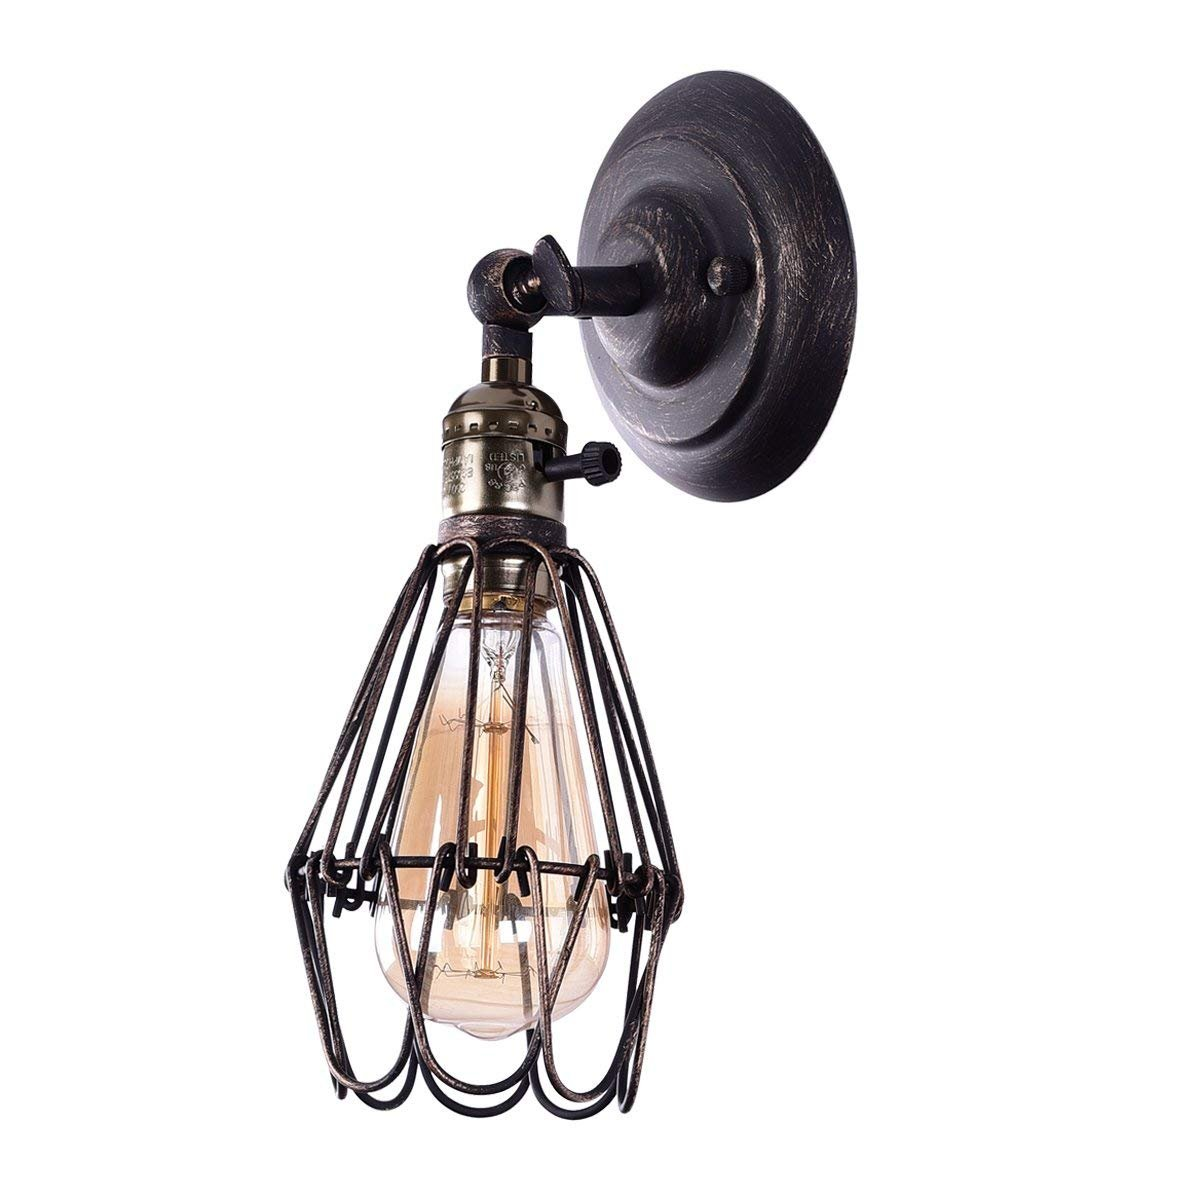 Wire Cage Wall Sconce Cmyk Led Dimmable Metal Industrial Light Room Ceiling Vintage Retro On Wiring Lights Shade Style Edison Mini Antique Fixture For Headboard Bedroom